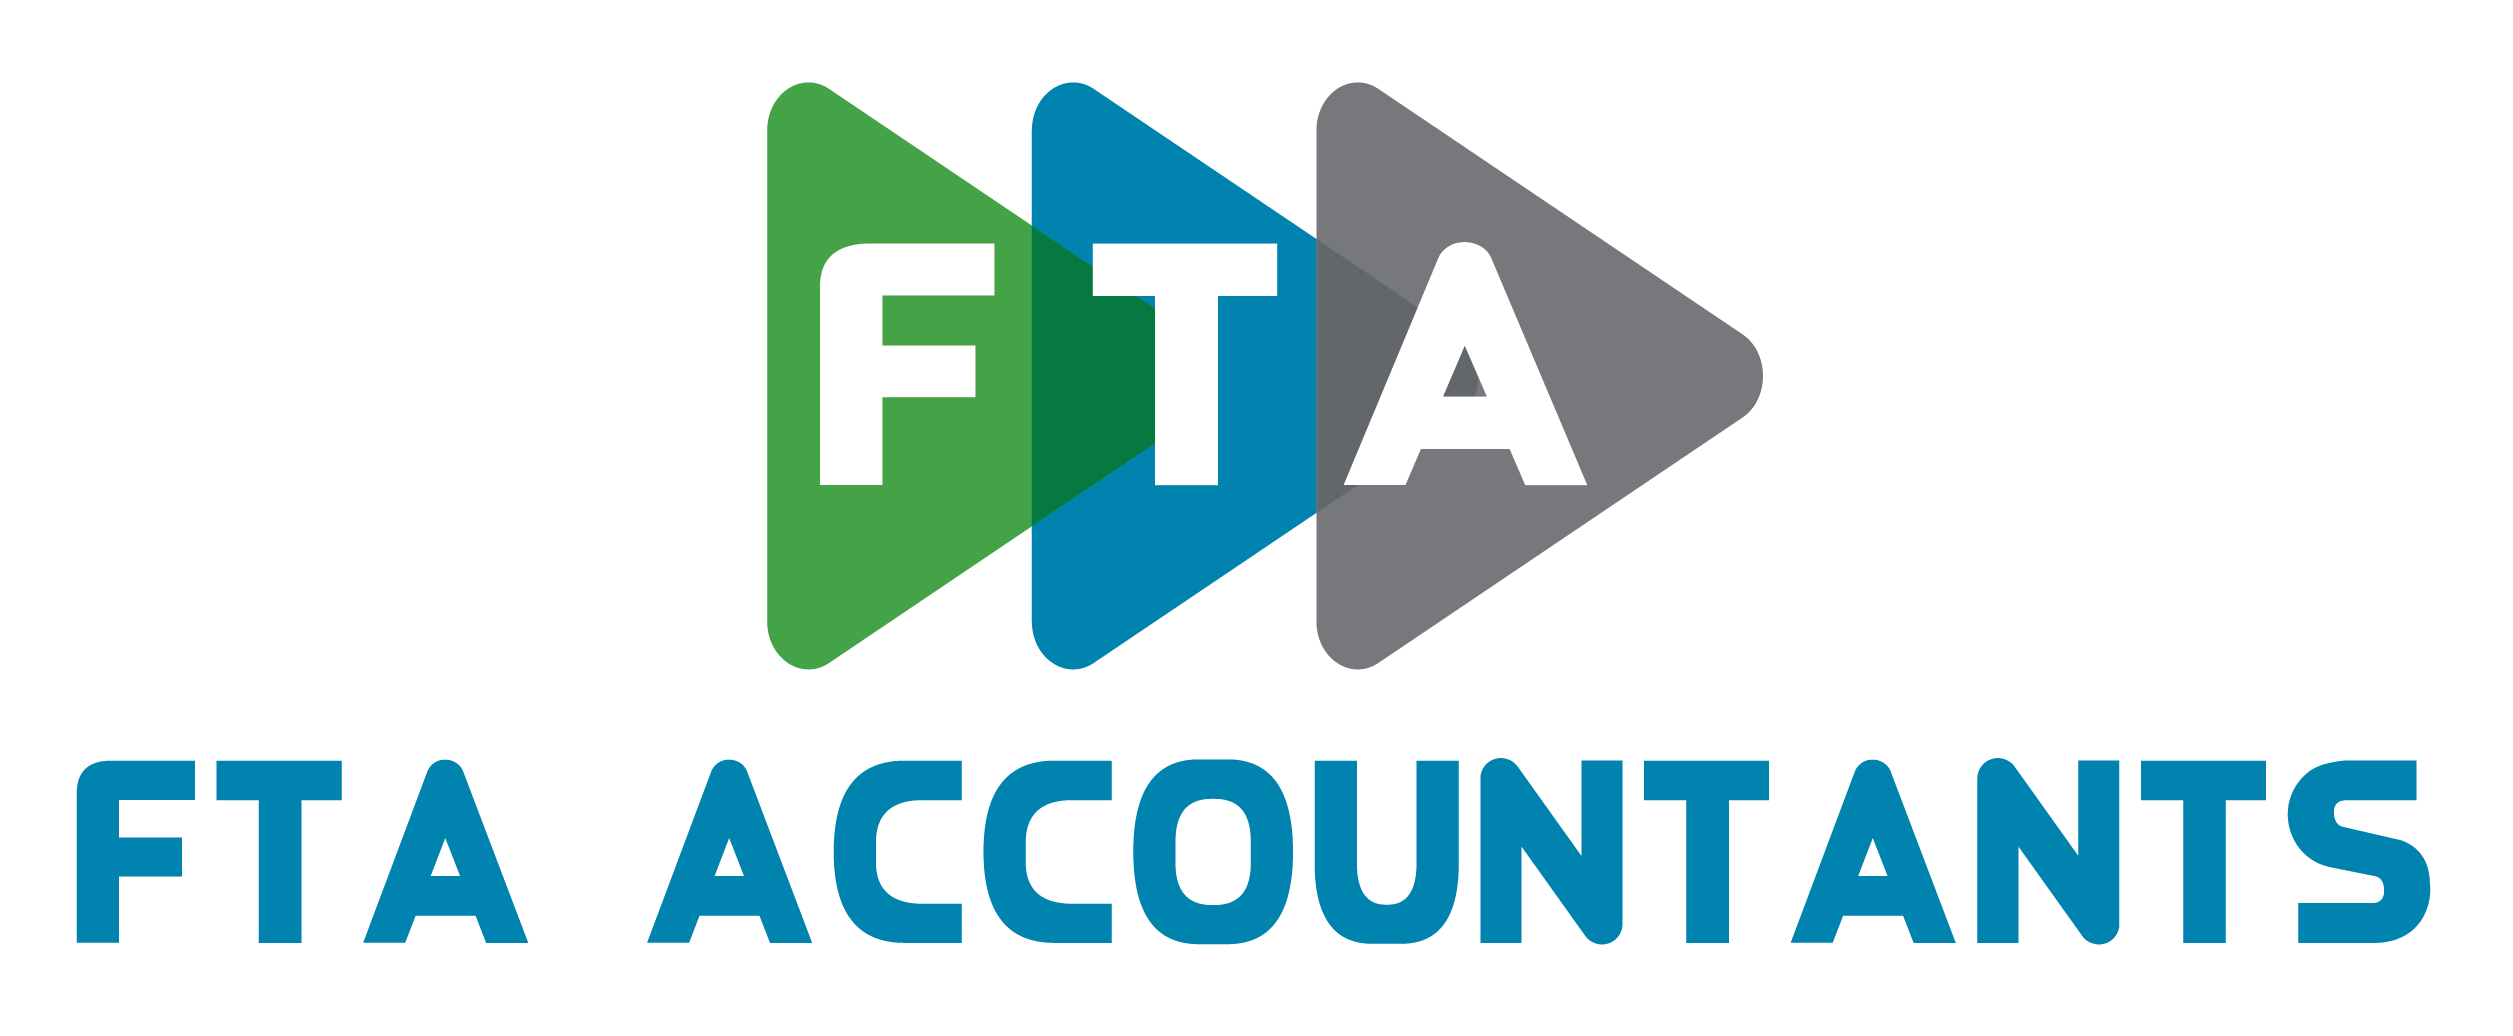 FTA Accountants Pty Ltd